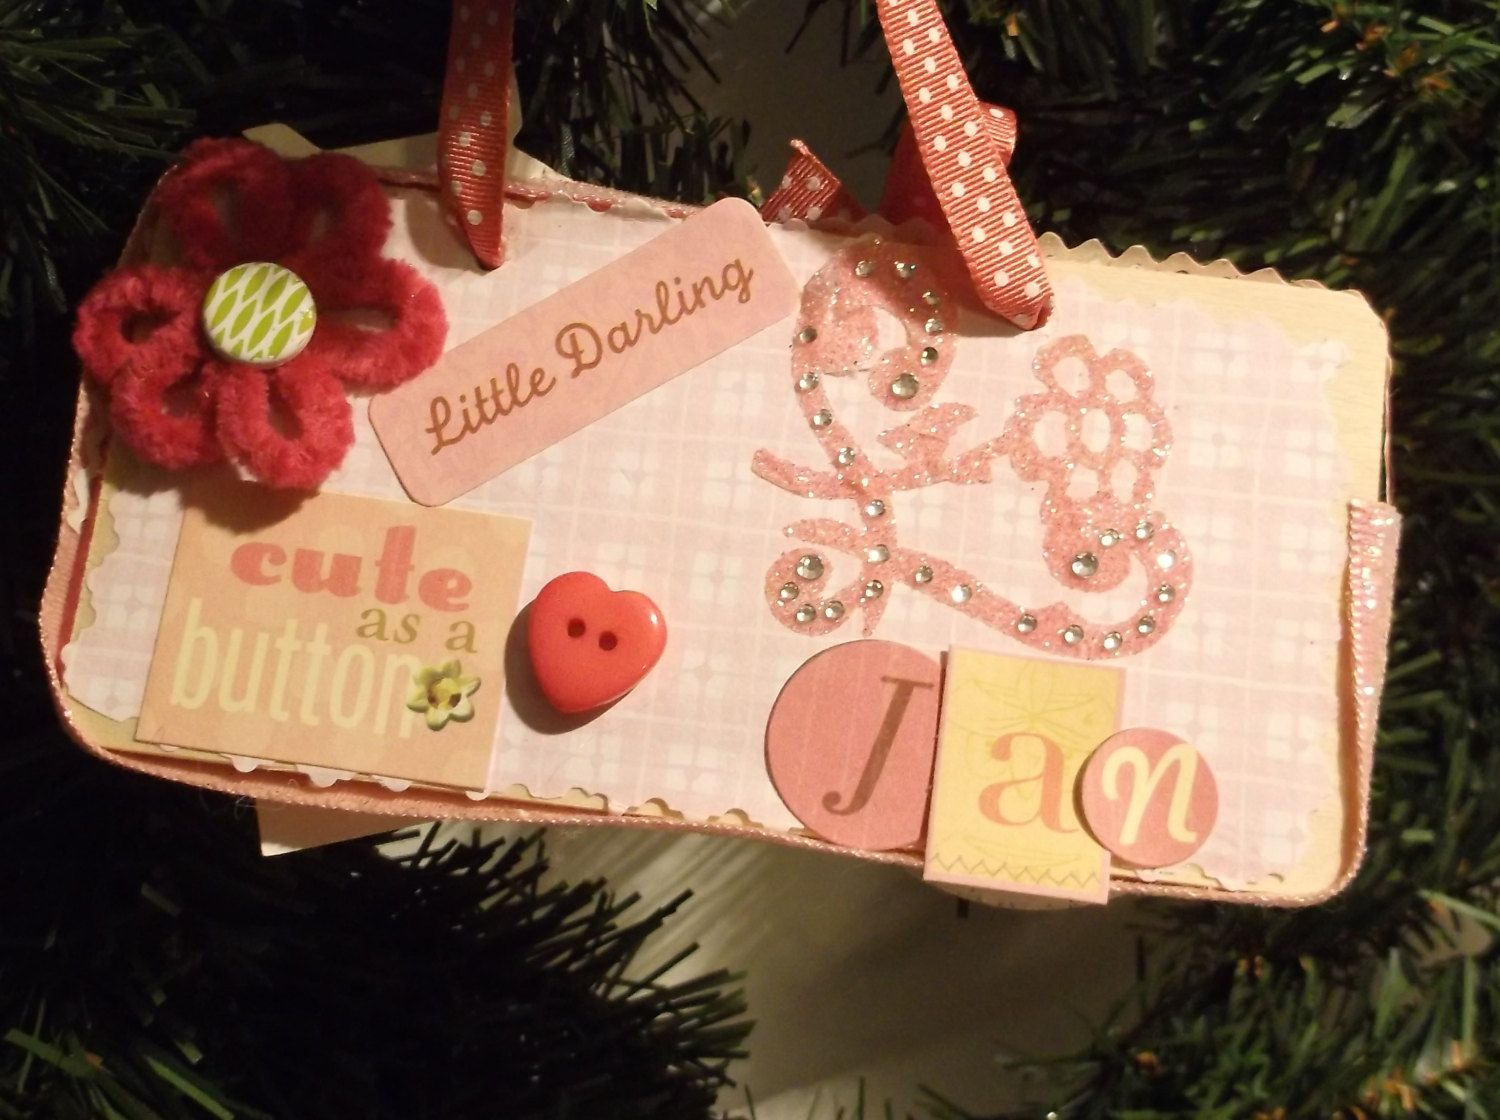 Cute as a Button Ornament for Baby Girl's First Christmas by WhiteSquirrelGifts on Etsy